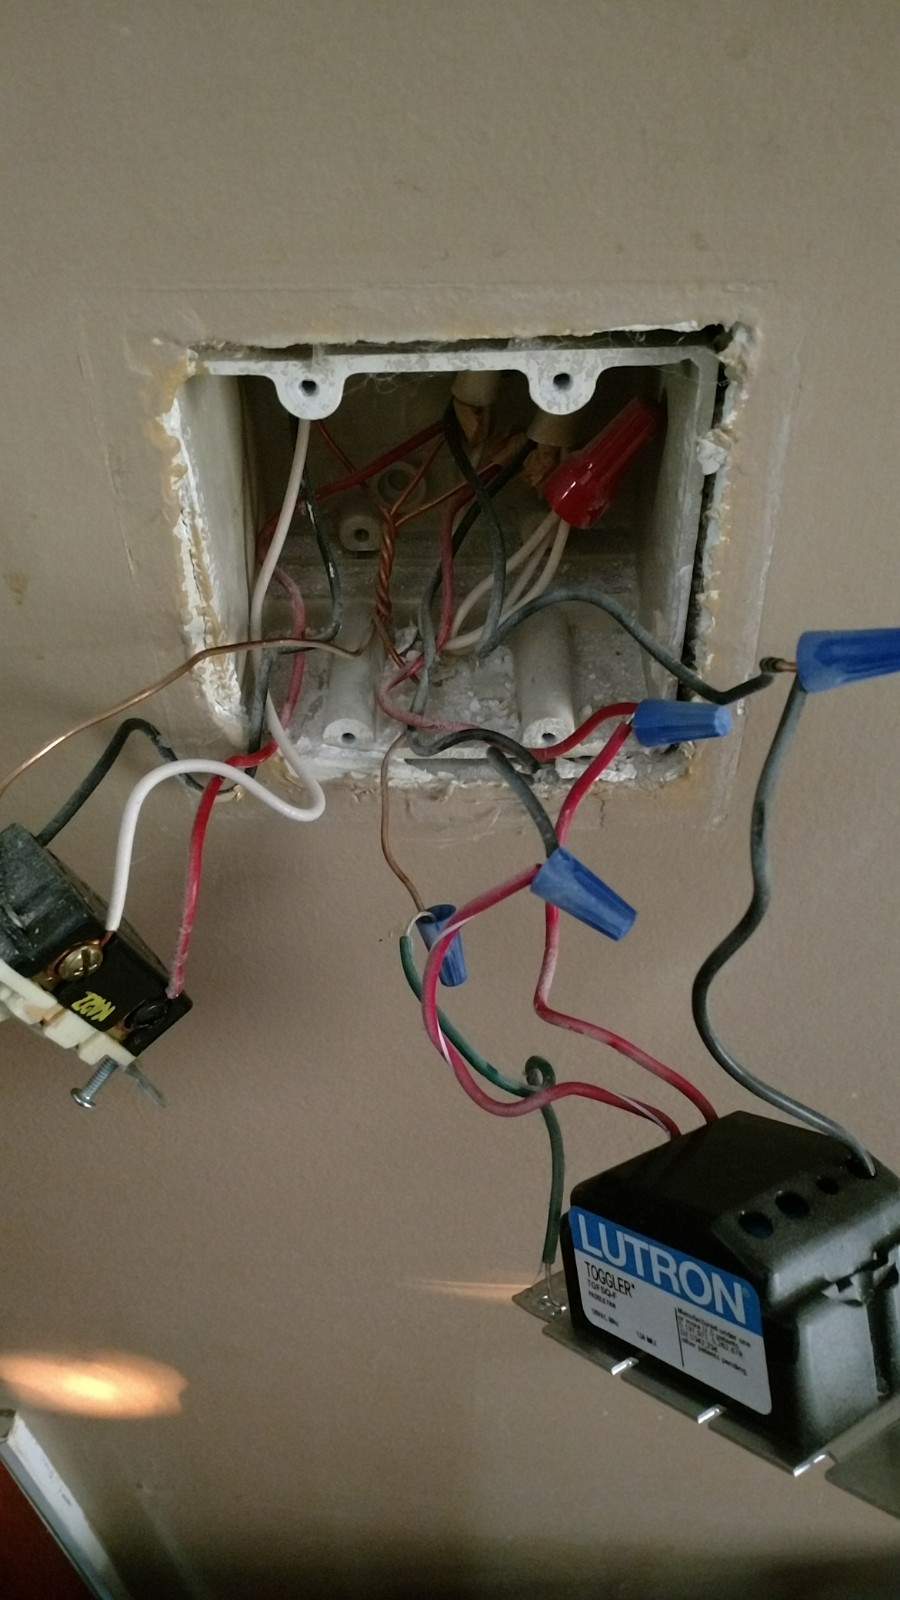 I Am Trying To Install A Wink Relay Panel To Control Power